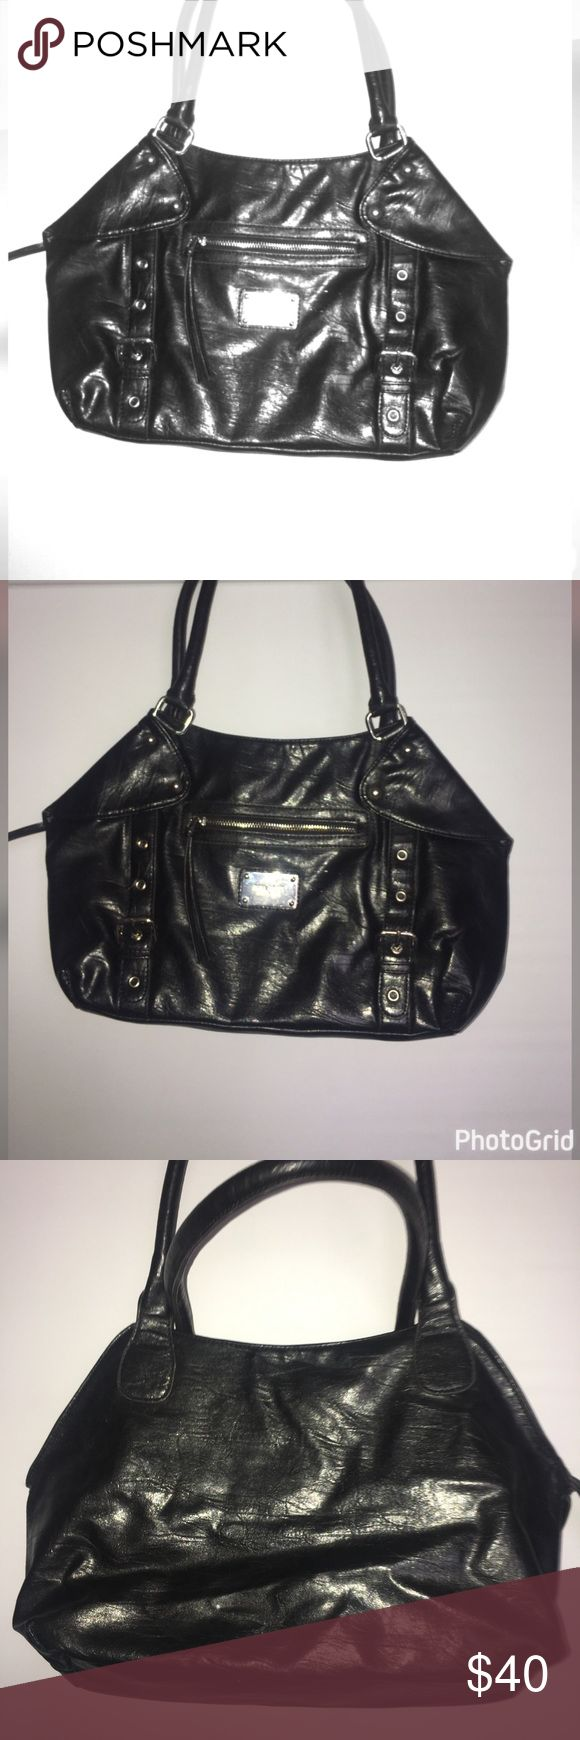 Black Beauty Nine West purse Black Beauty Nine West purse hobo bag very cute zips shut pocket on front Nine West Bags Hobos